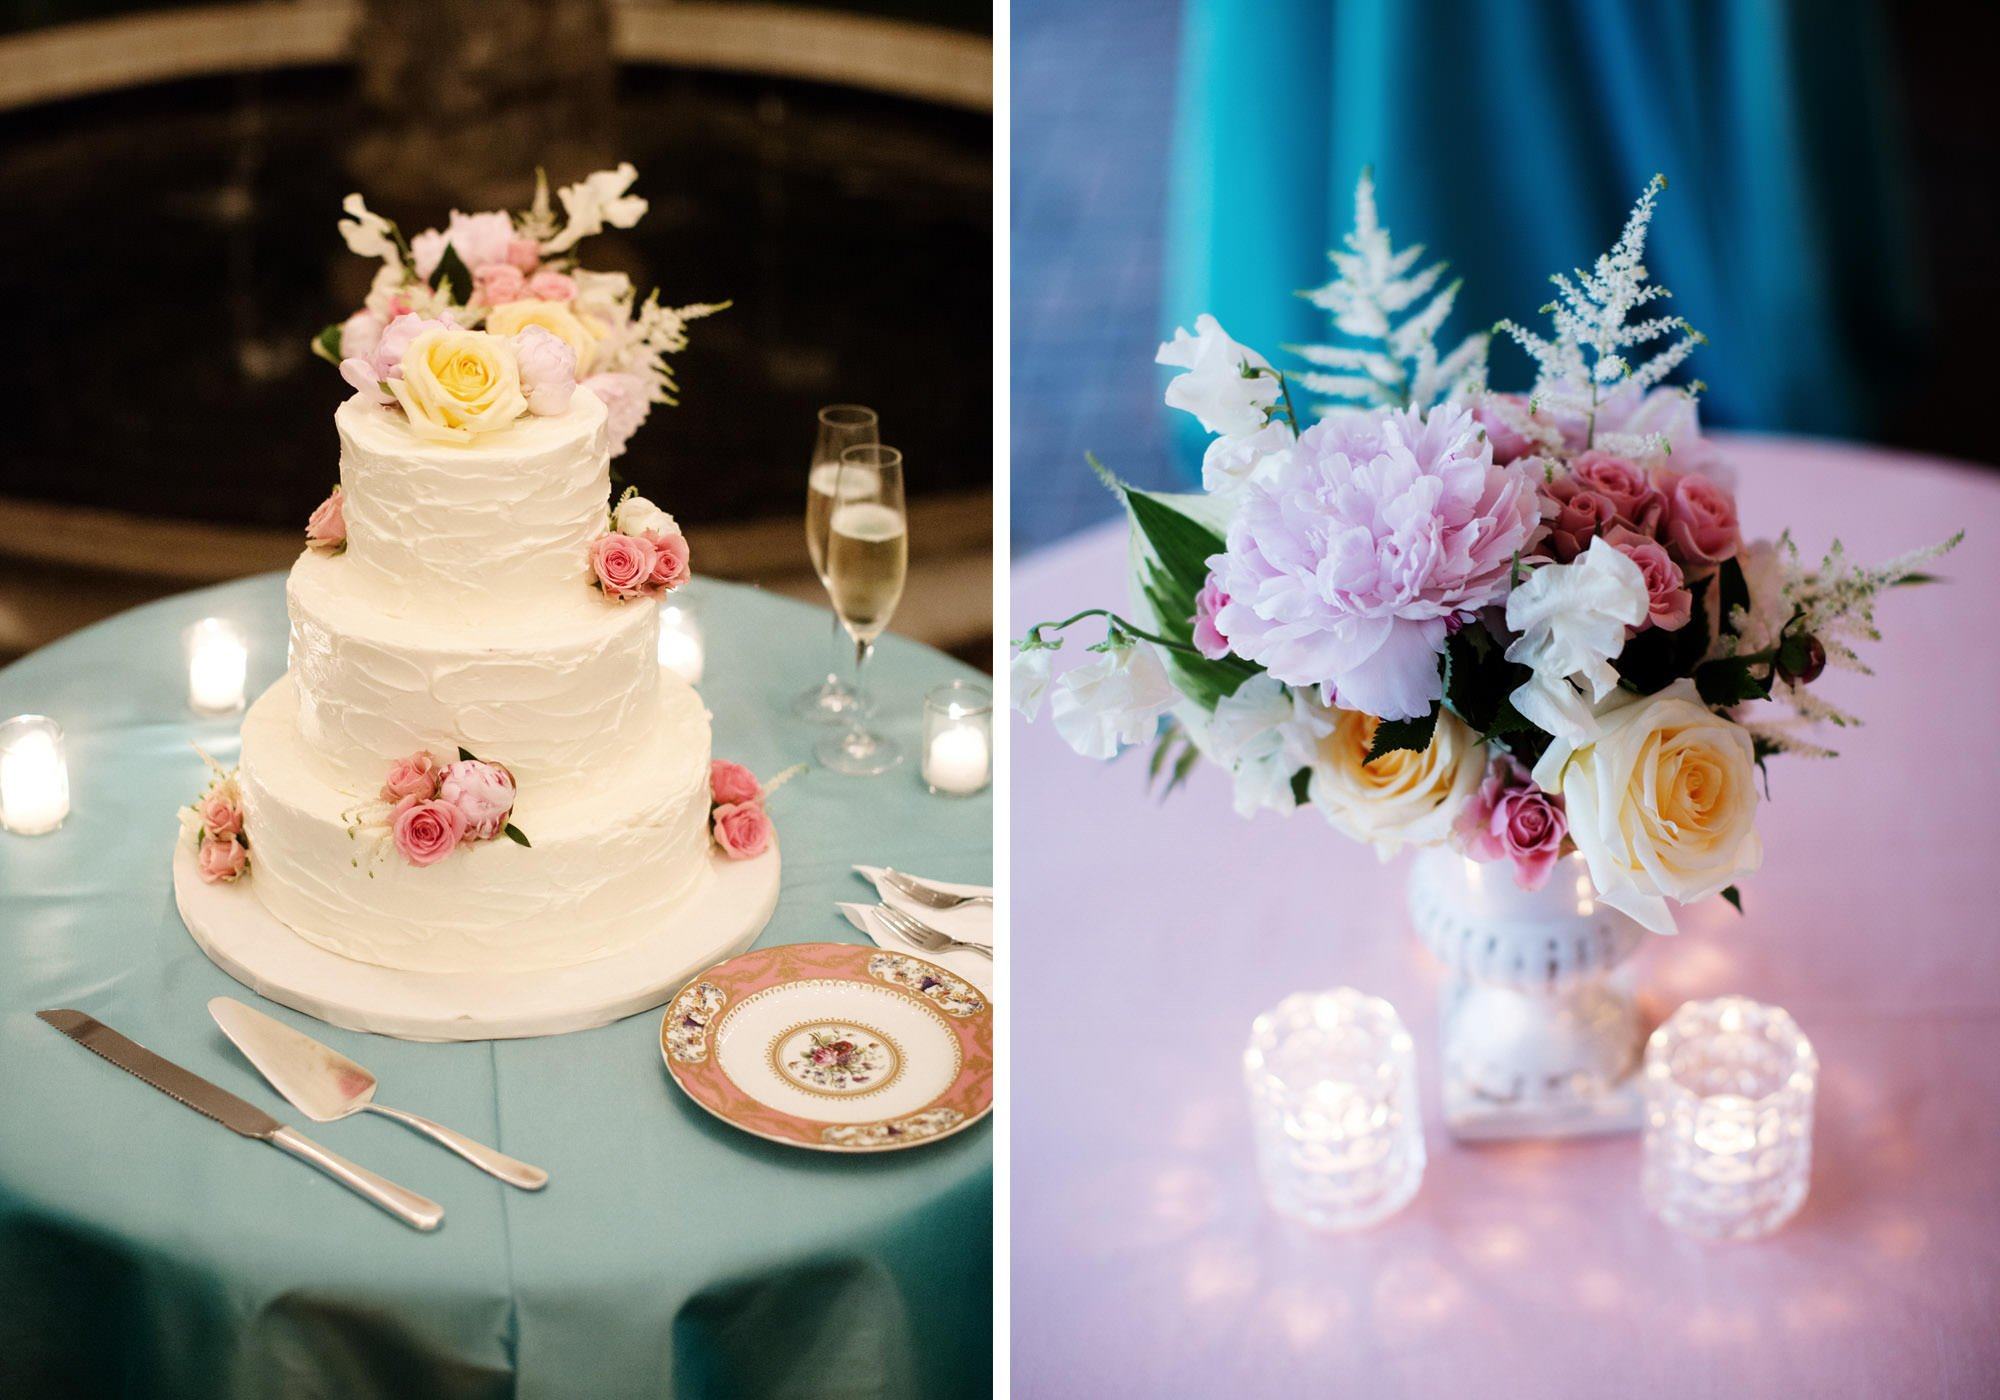 Details of the wedding cake at Oxon Hill Manor.